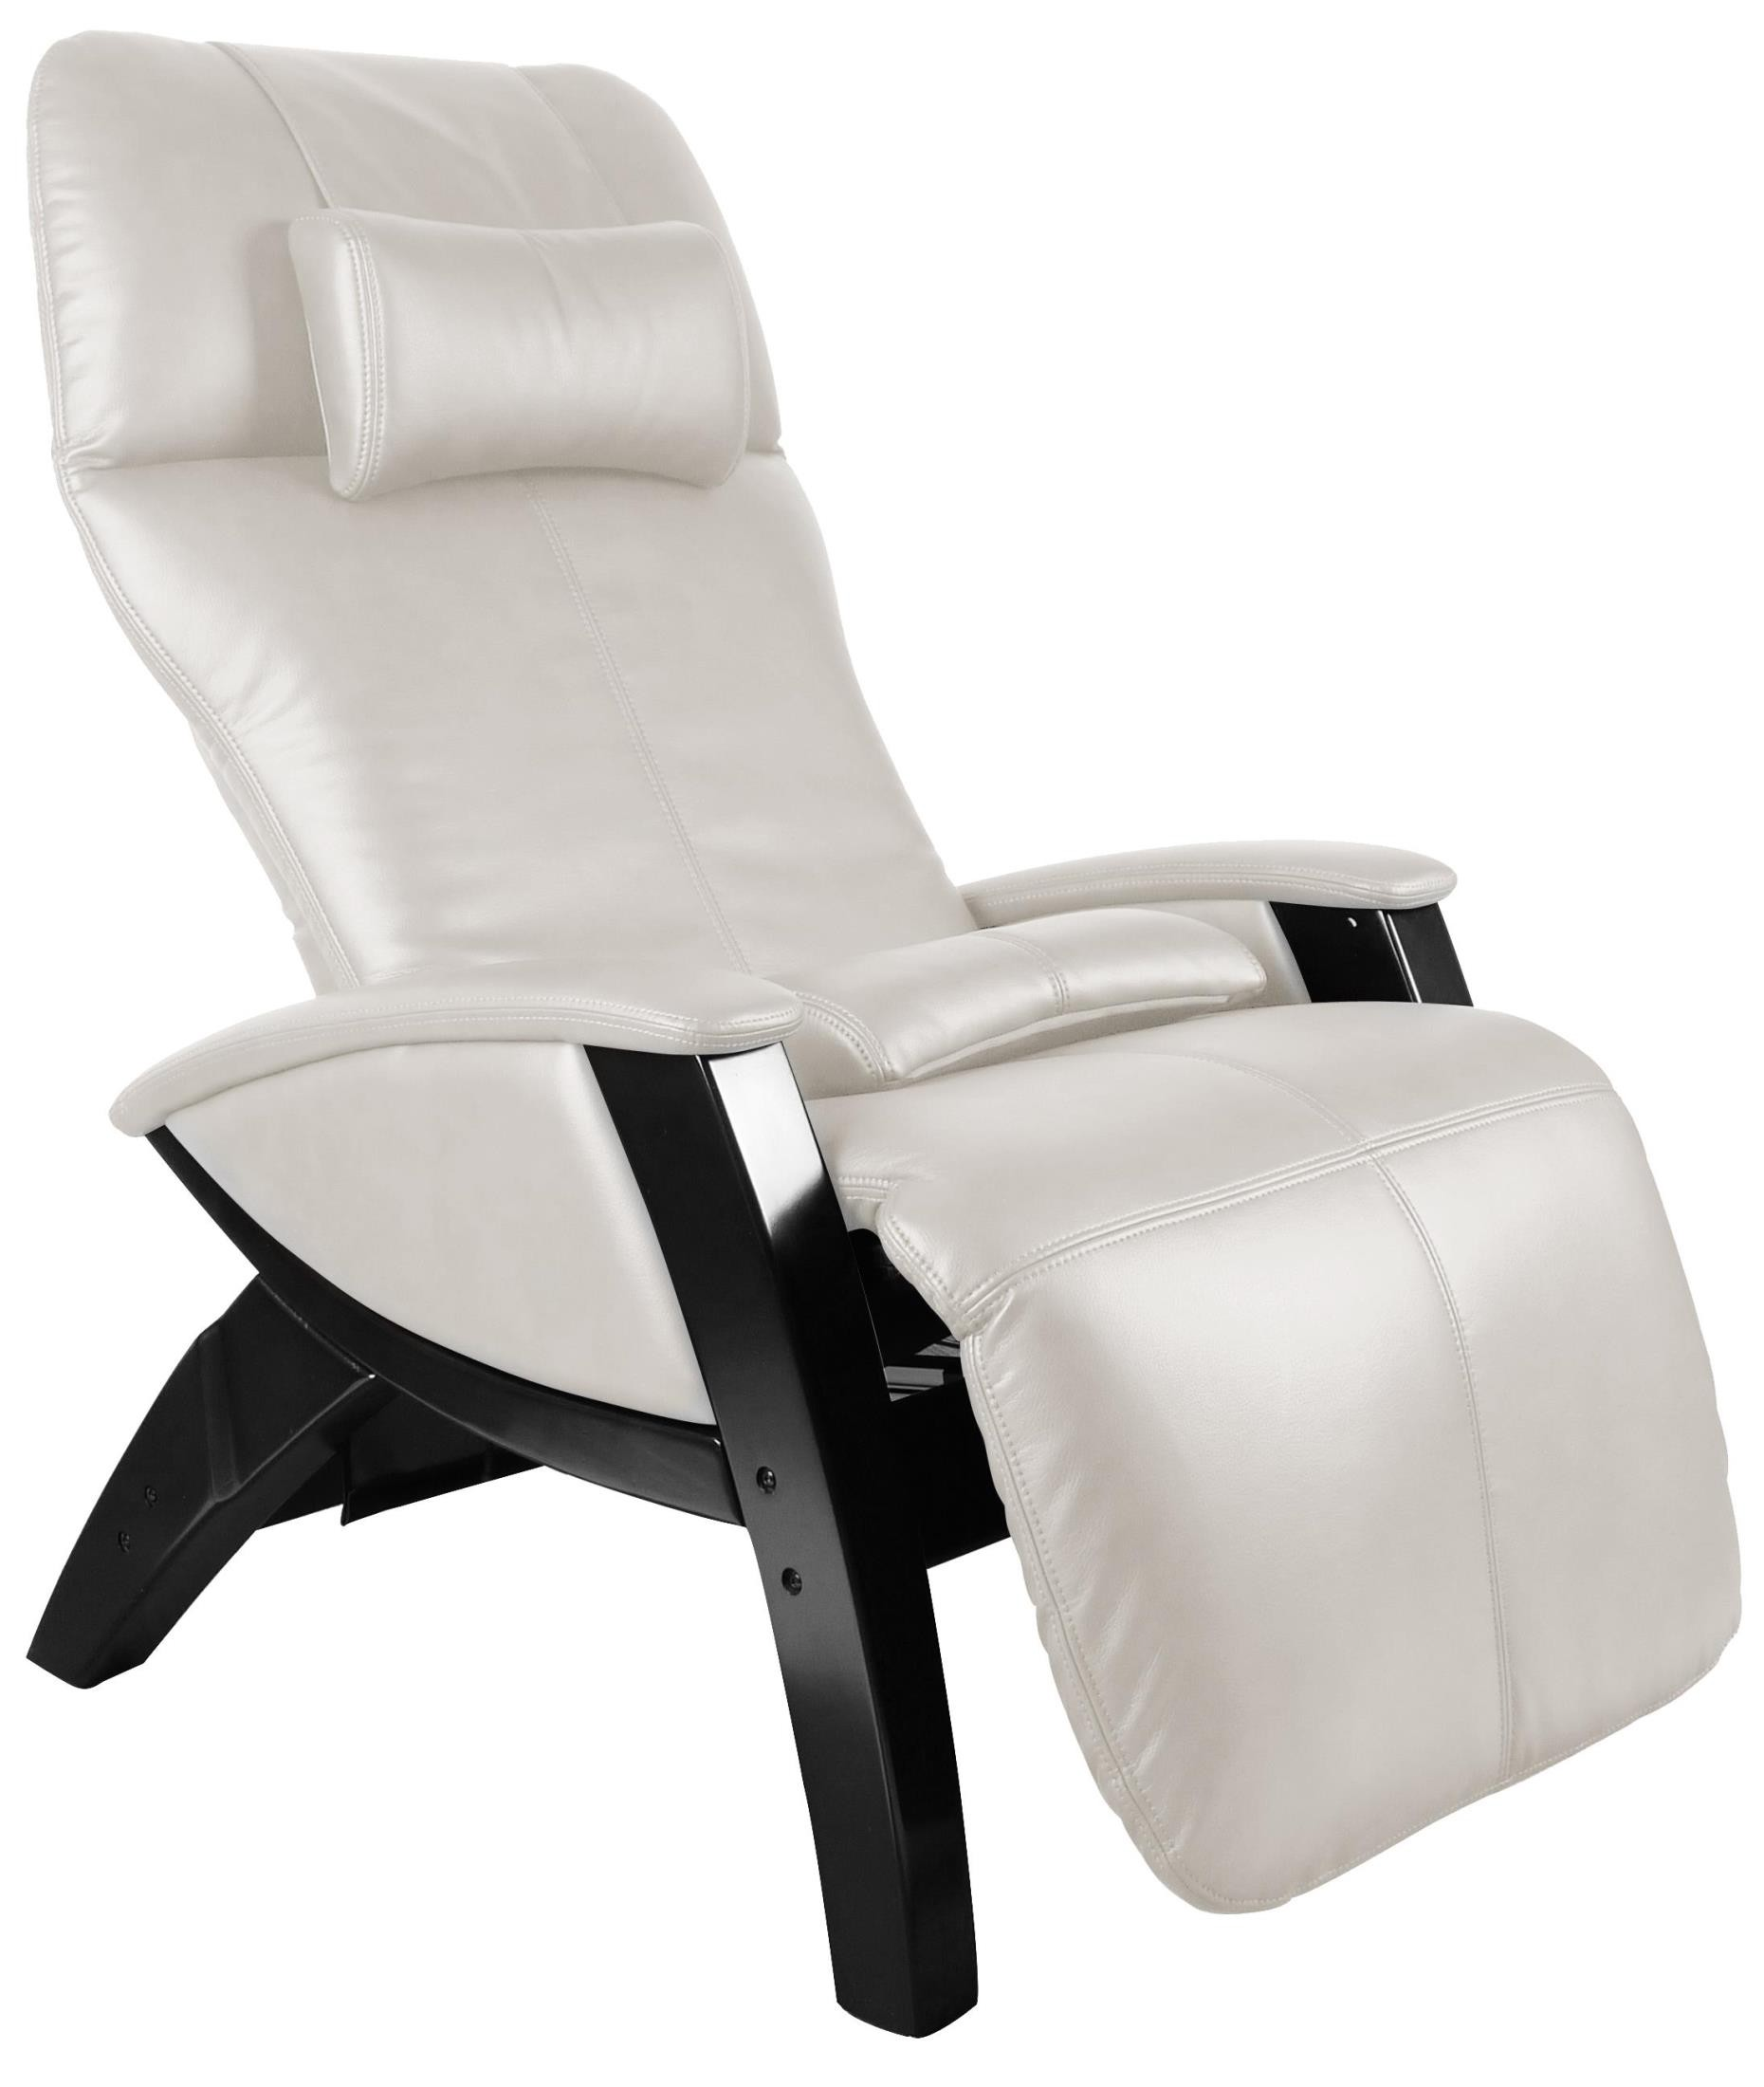 Svago Chair Svago Zg Ivory Chair From Svago Sv401 30 Bl Coleman